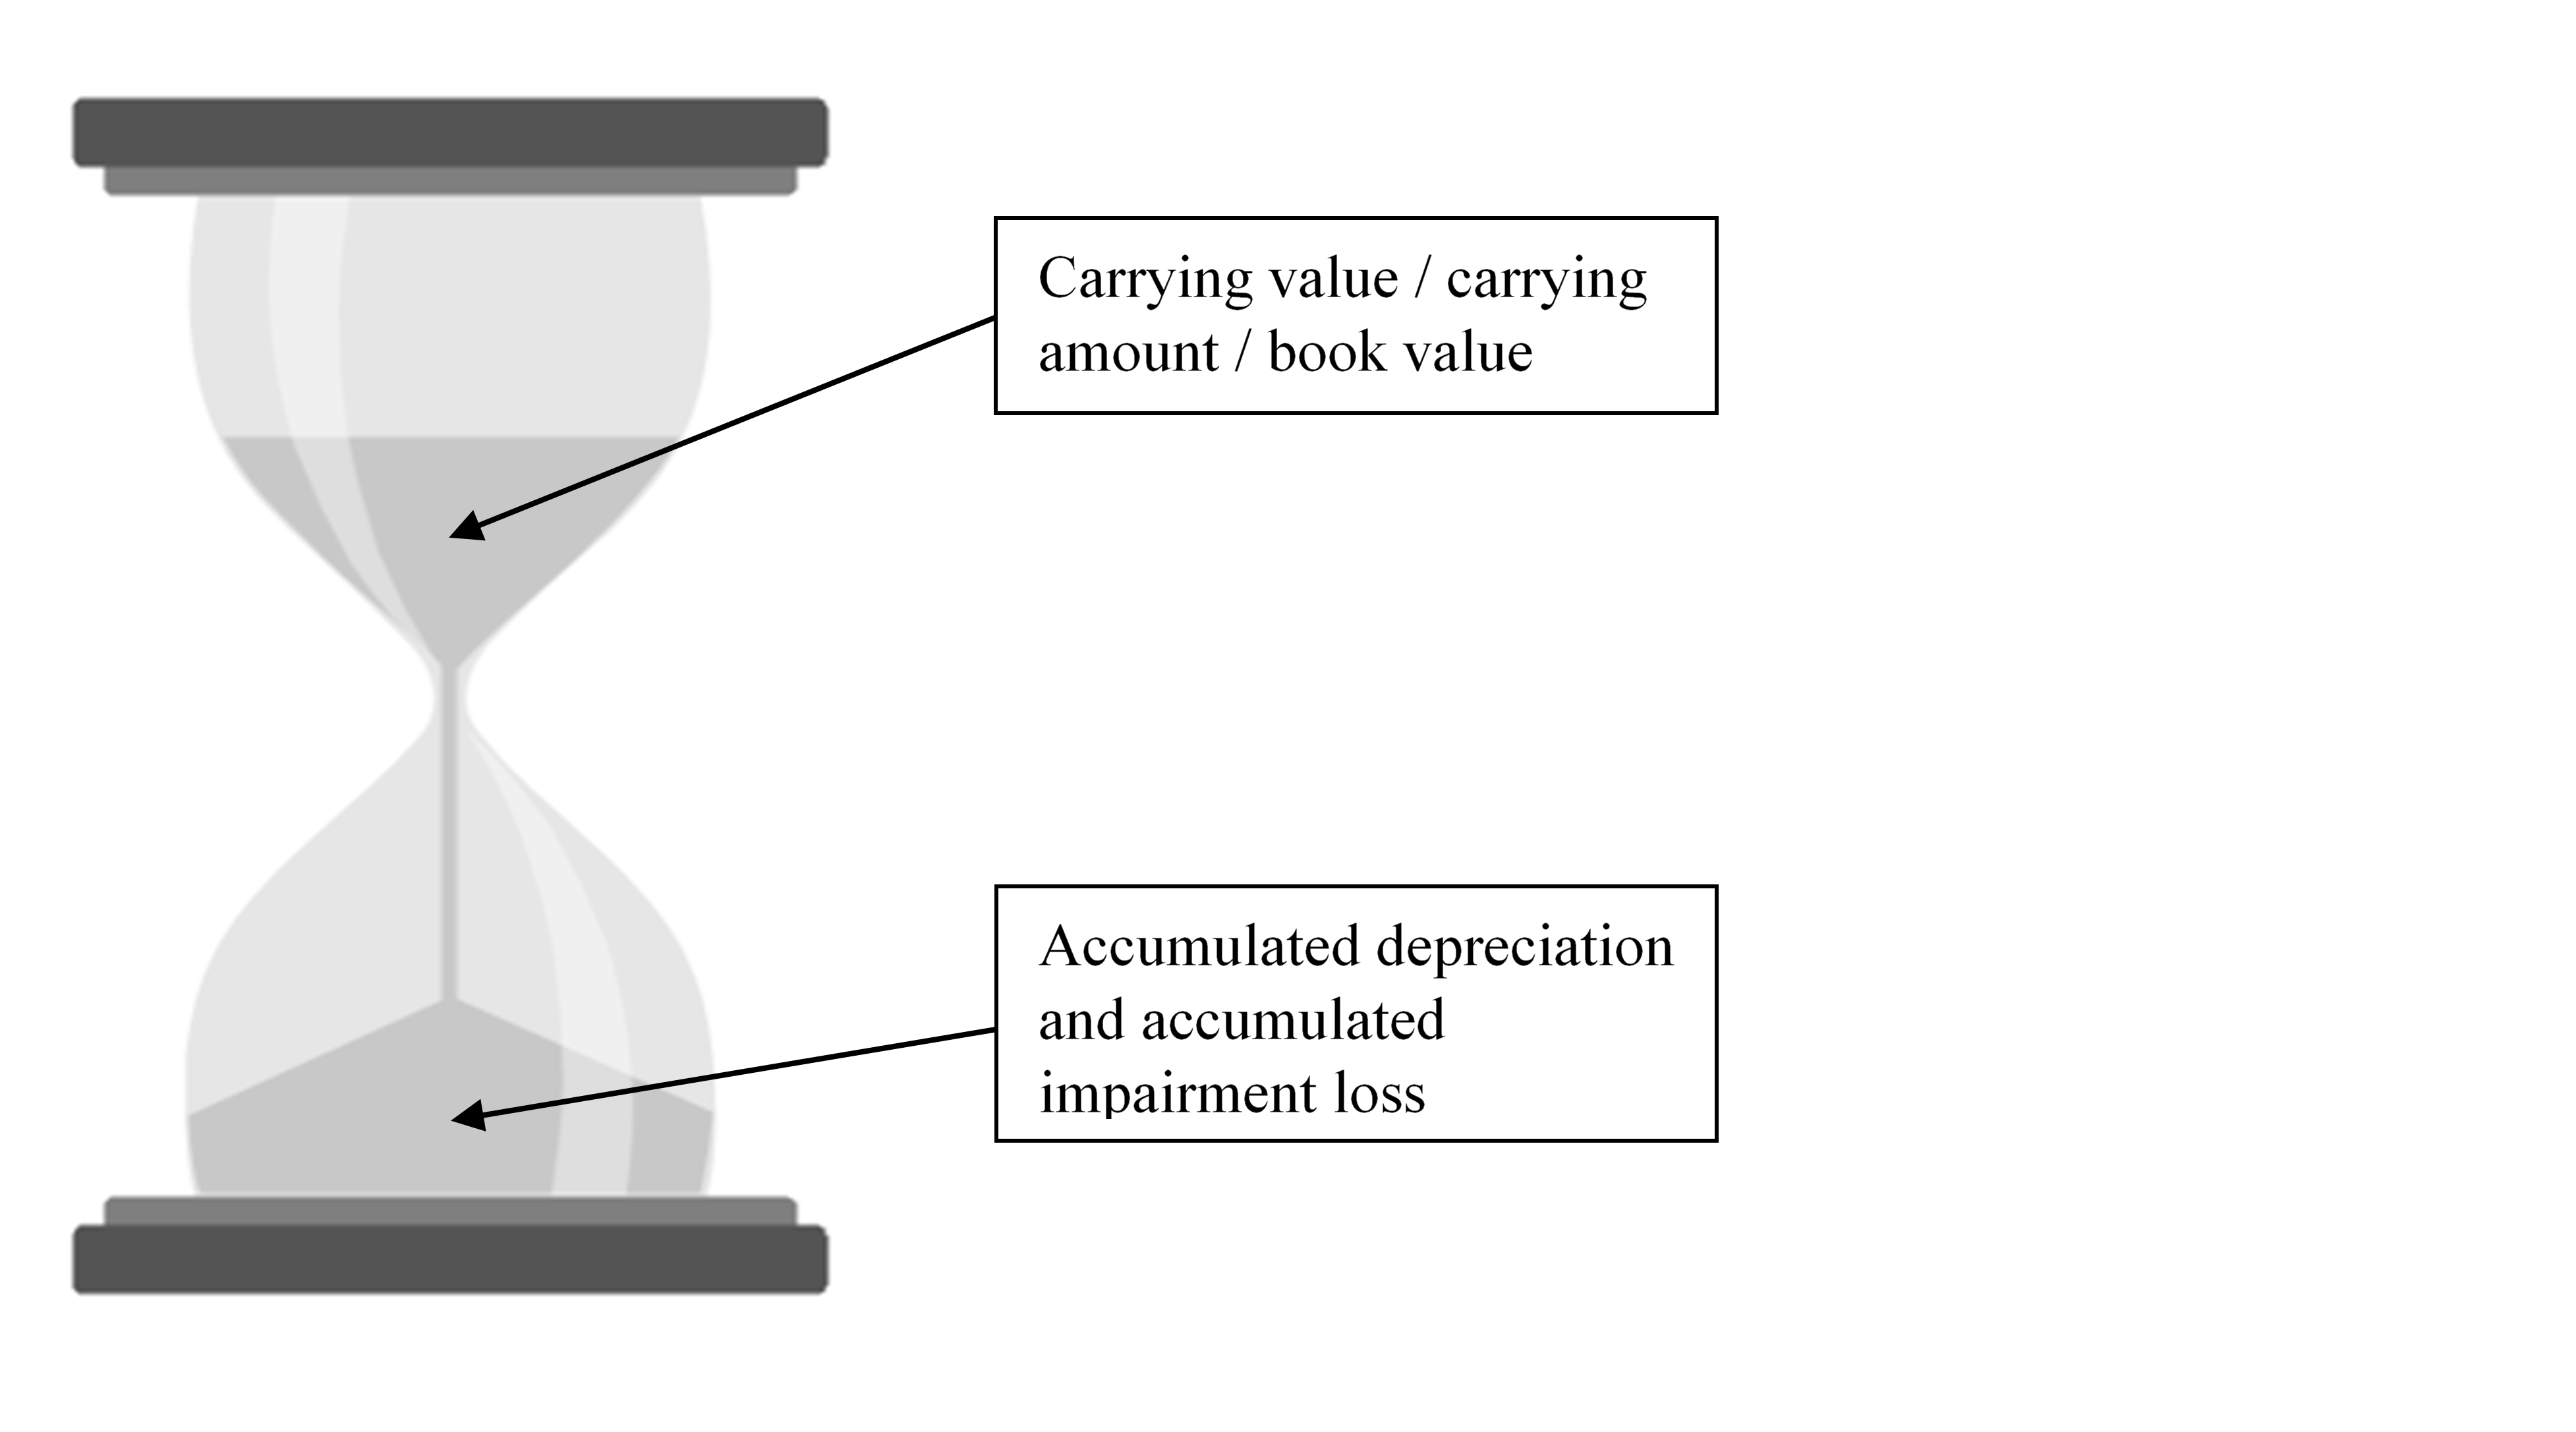 Carrying Value and Accumulated Depreciation